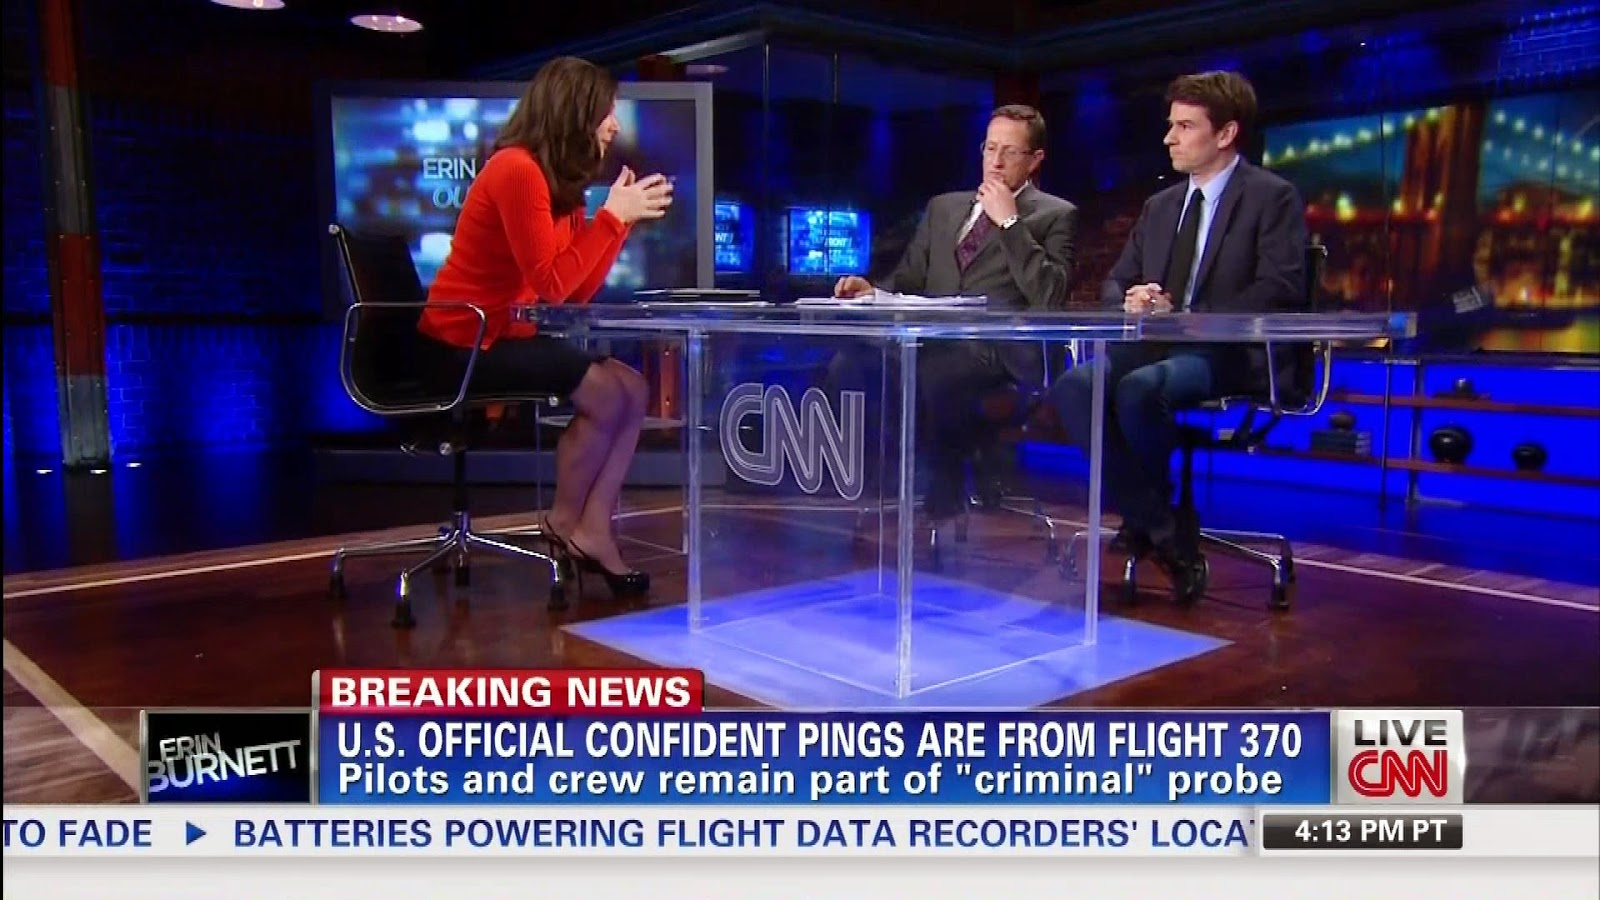 cnn Erin Burnett hot legs